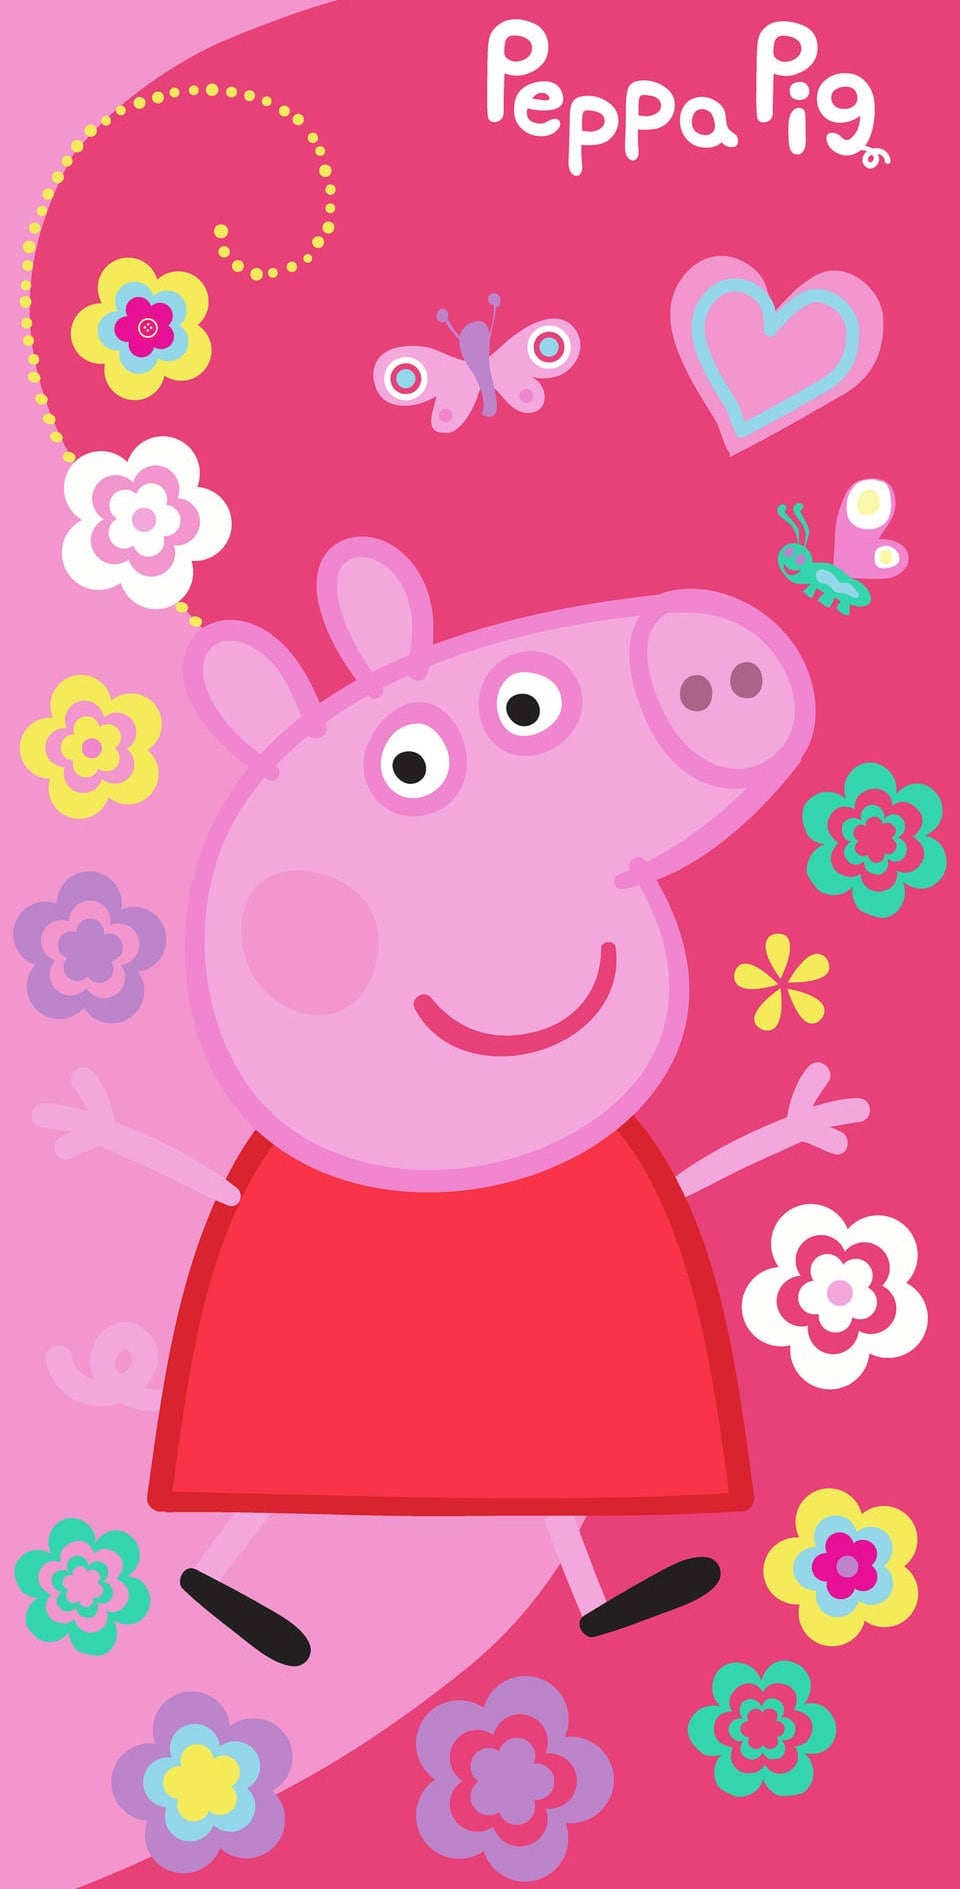 Aesthetic Peppa Pig Wallpaper Cute Iphone 11 Case 3104918 Hd Wallpaper Backgrounds Download